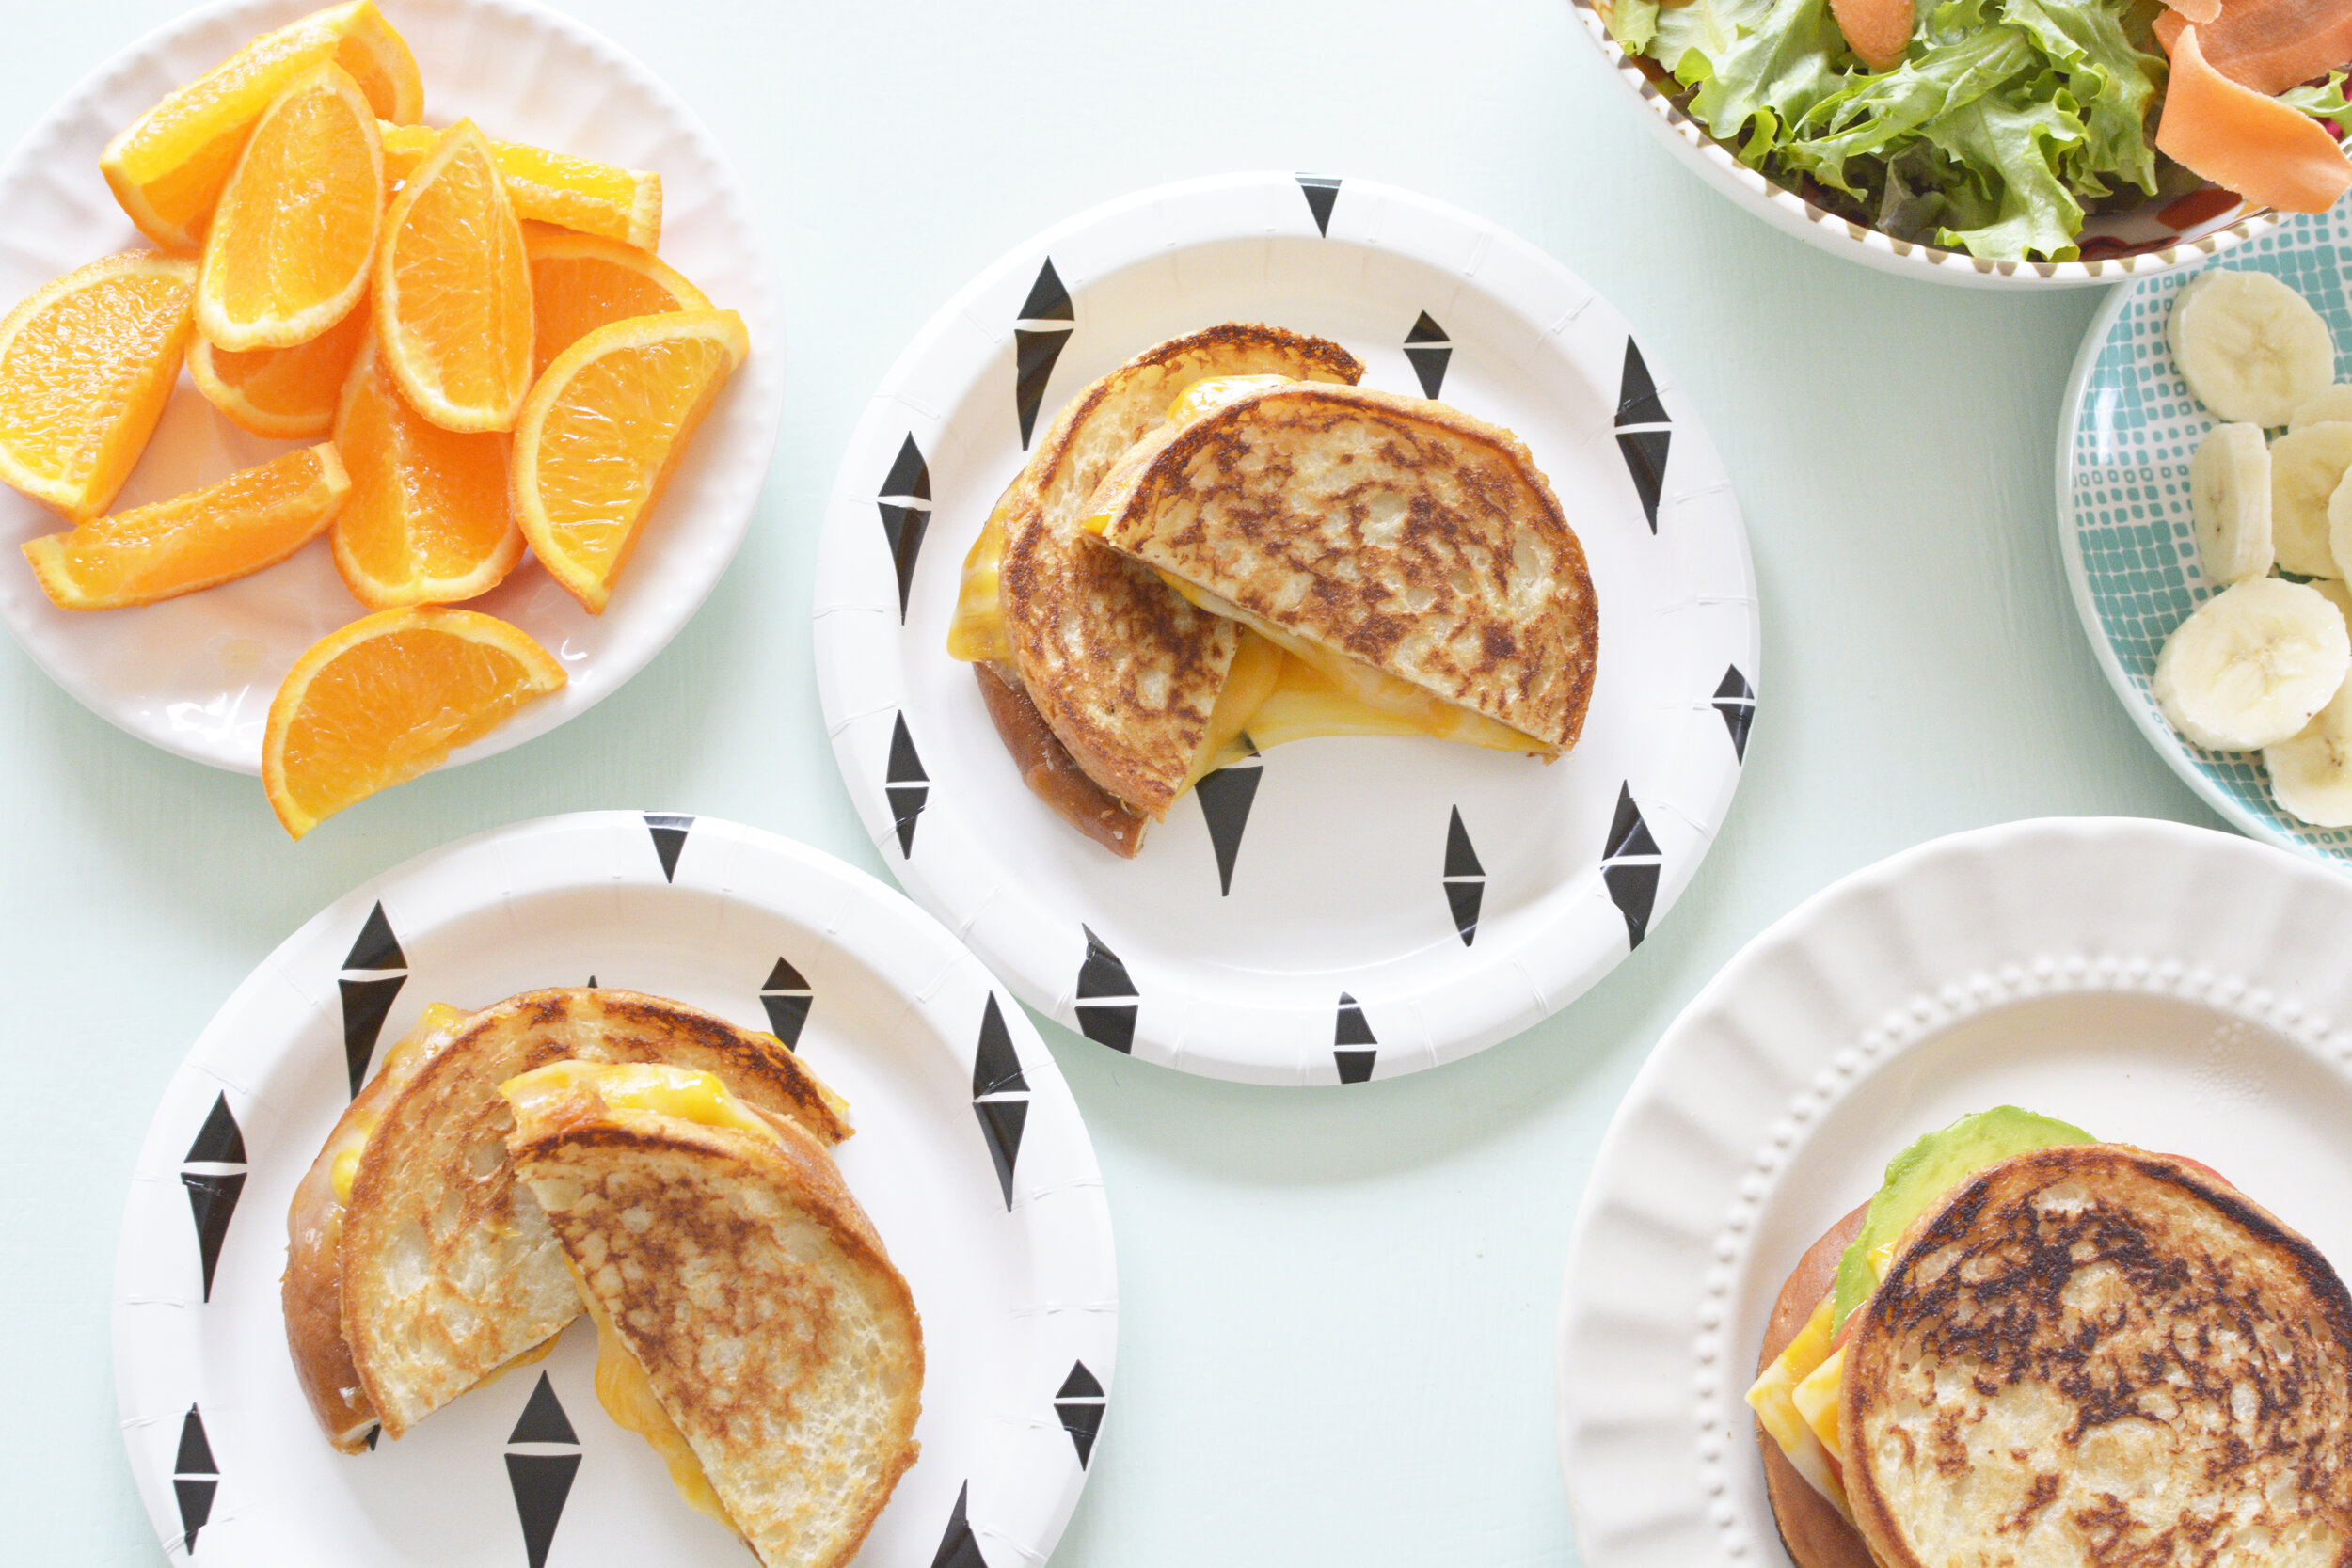 grilled cheese dinner.jpg